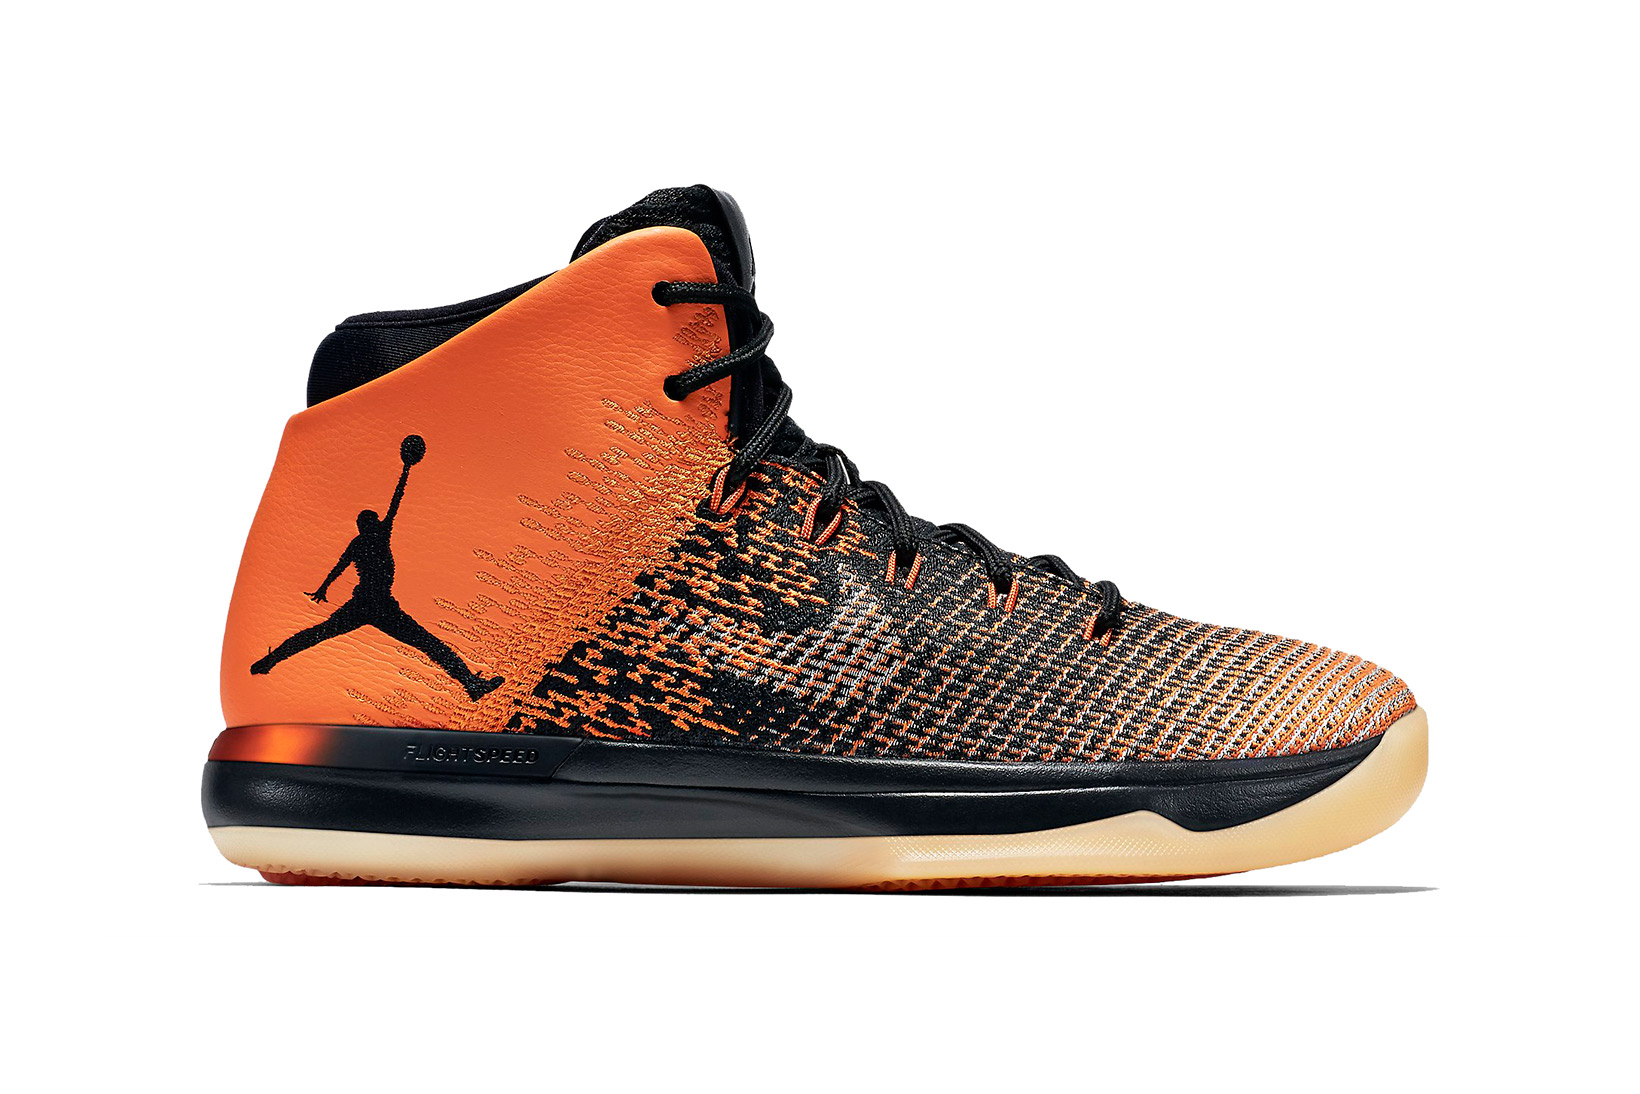 """The Air Jordan XXXI Joins the """"Shattered Backboard"""" Family"""